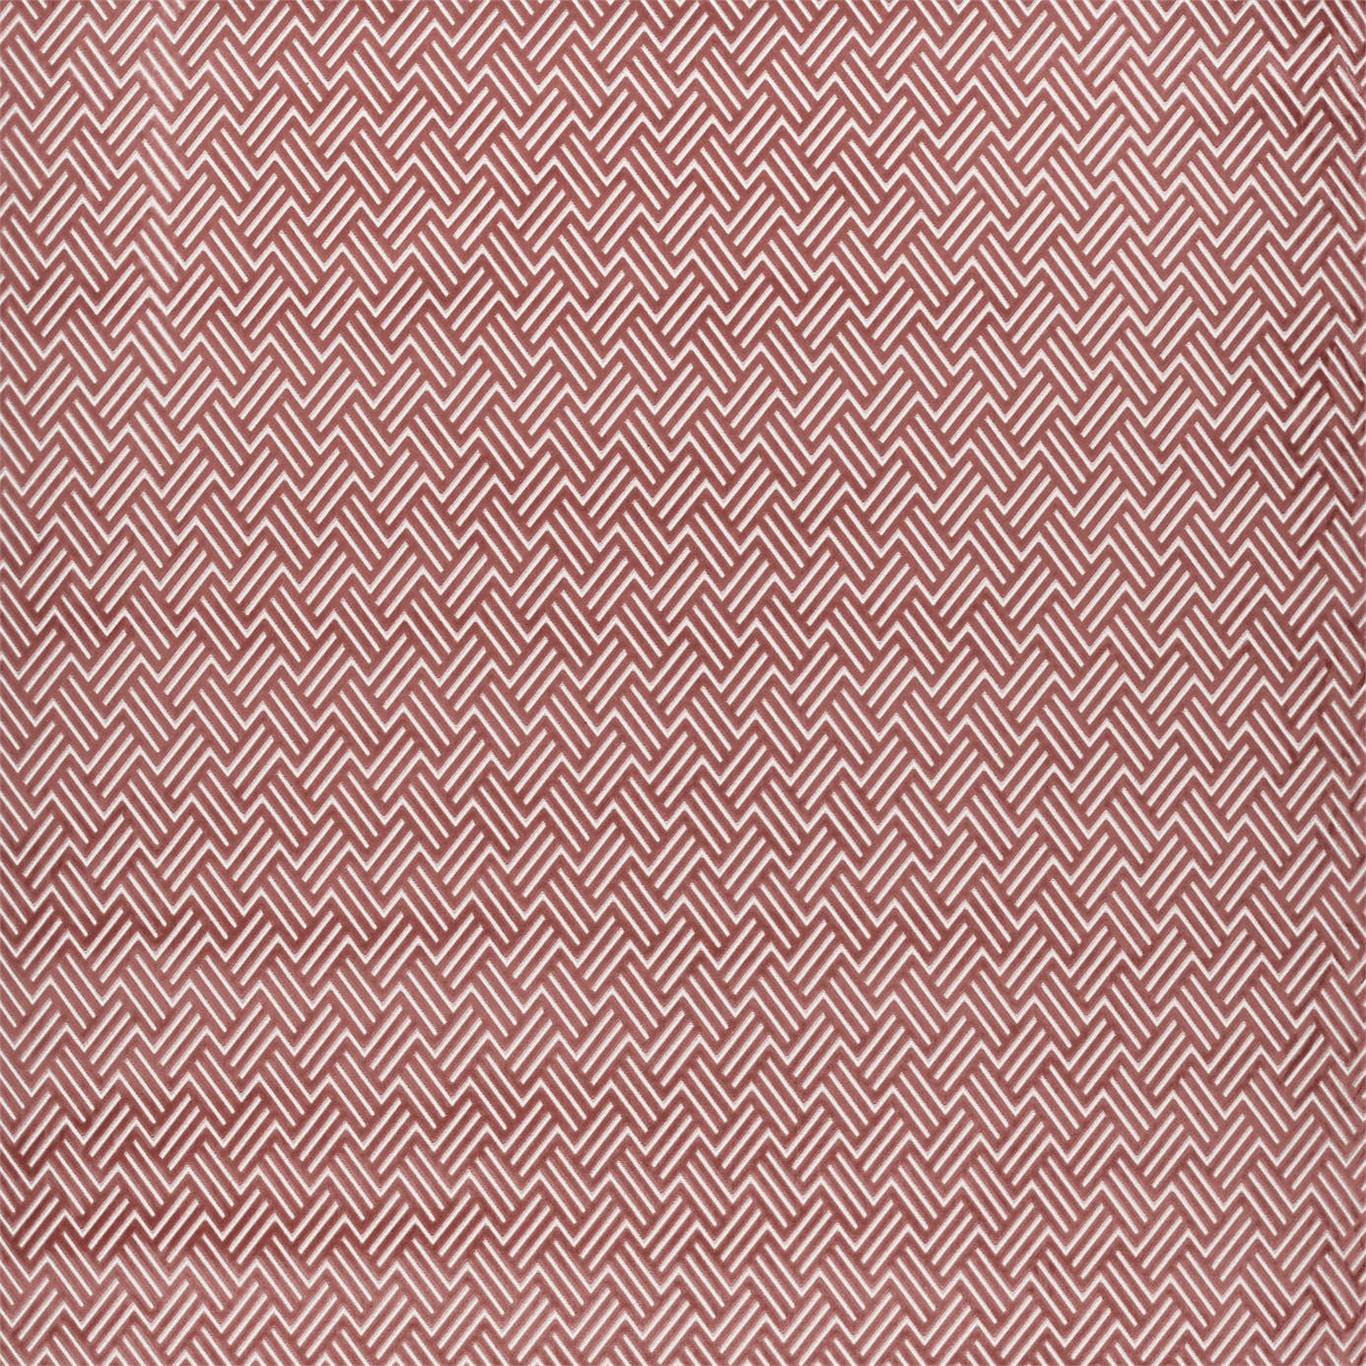 HMTC133489 Collection - Momentum 13 Fabric